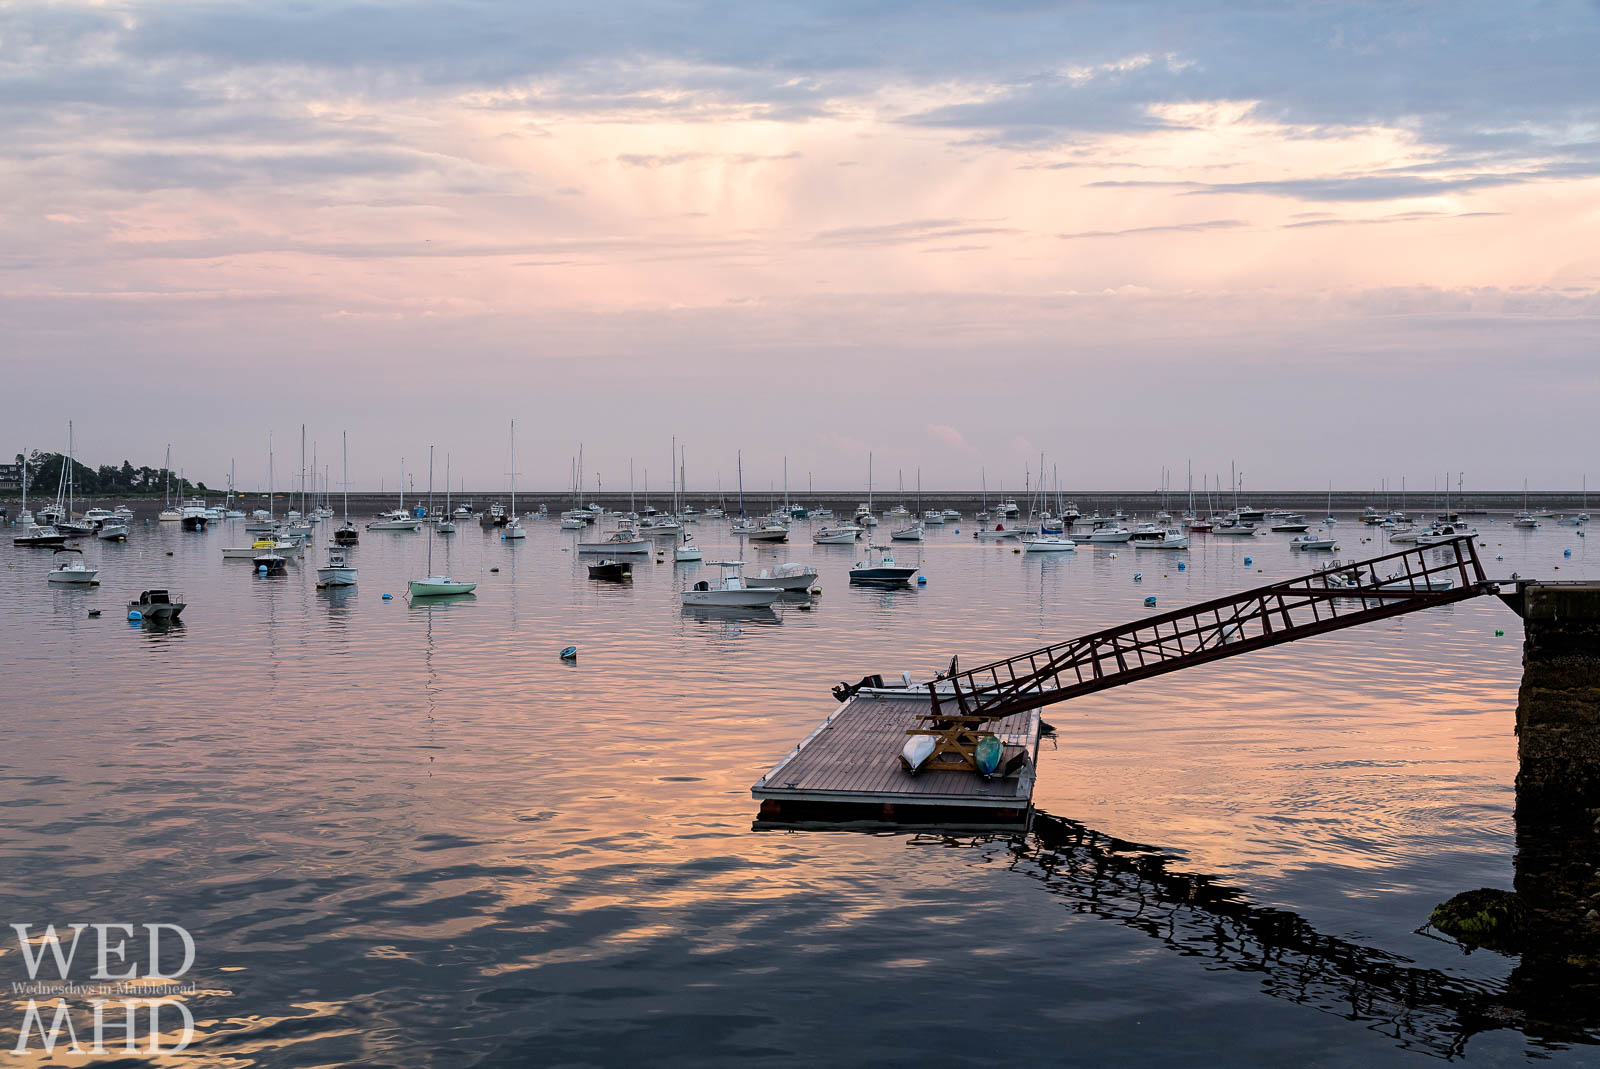 At low tide and the right angle this small dock seems to be floating on sunset at Ladys Cove in Marblehead